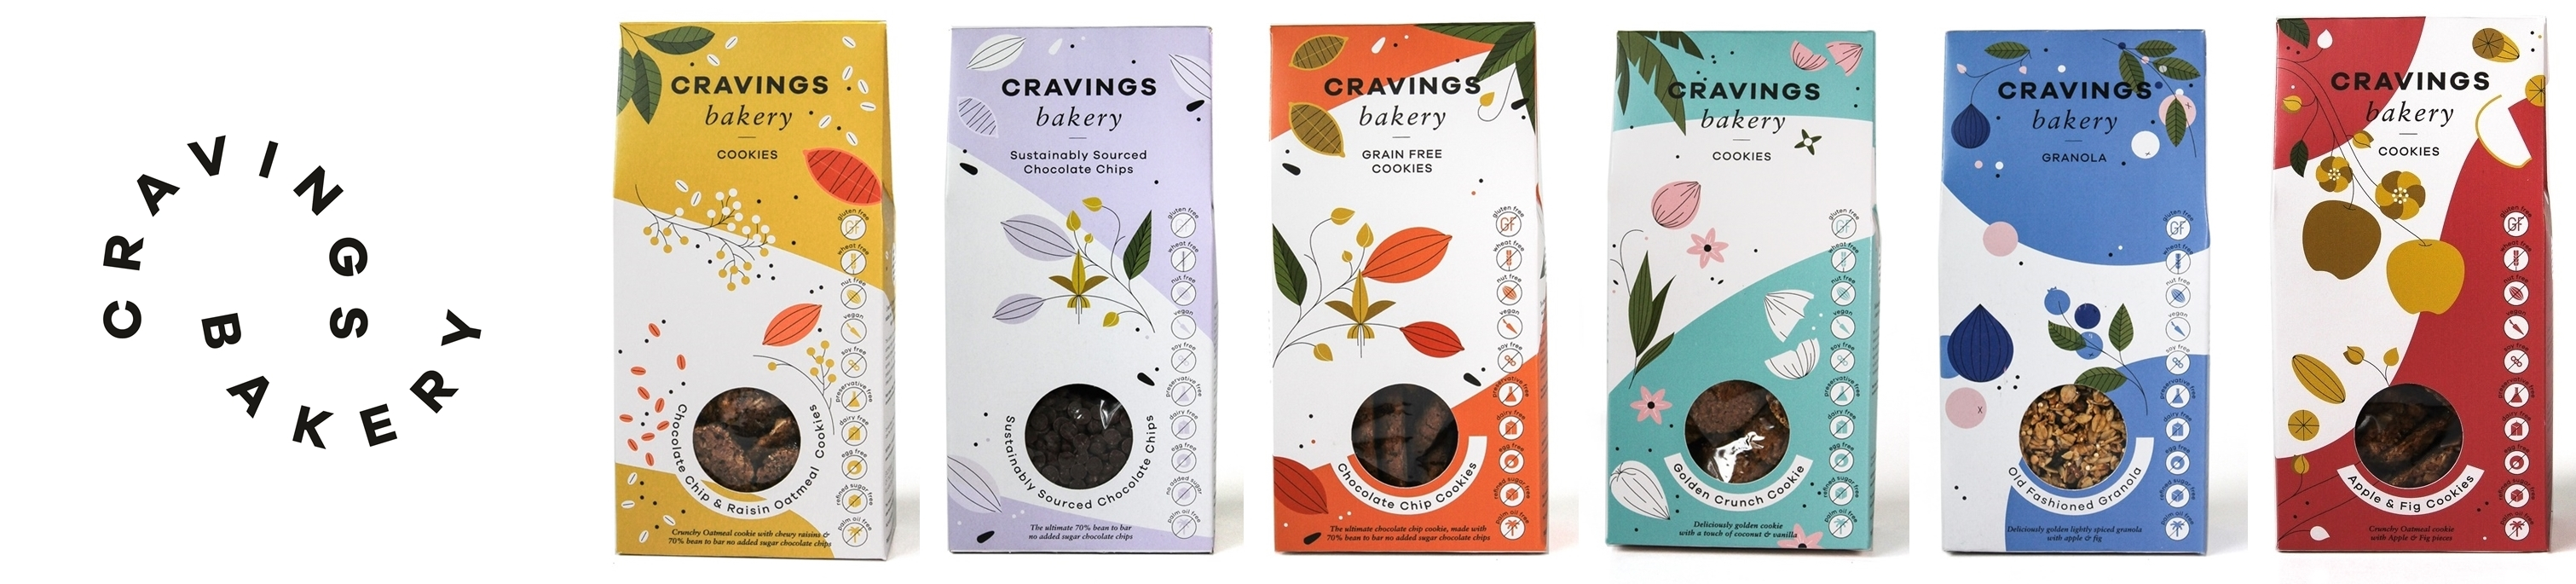 cravings-logo-for-neo-brand-page